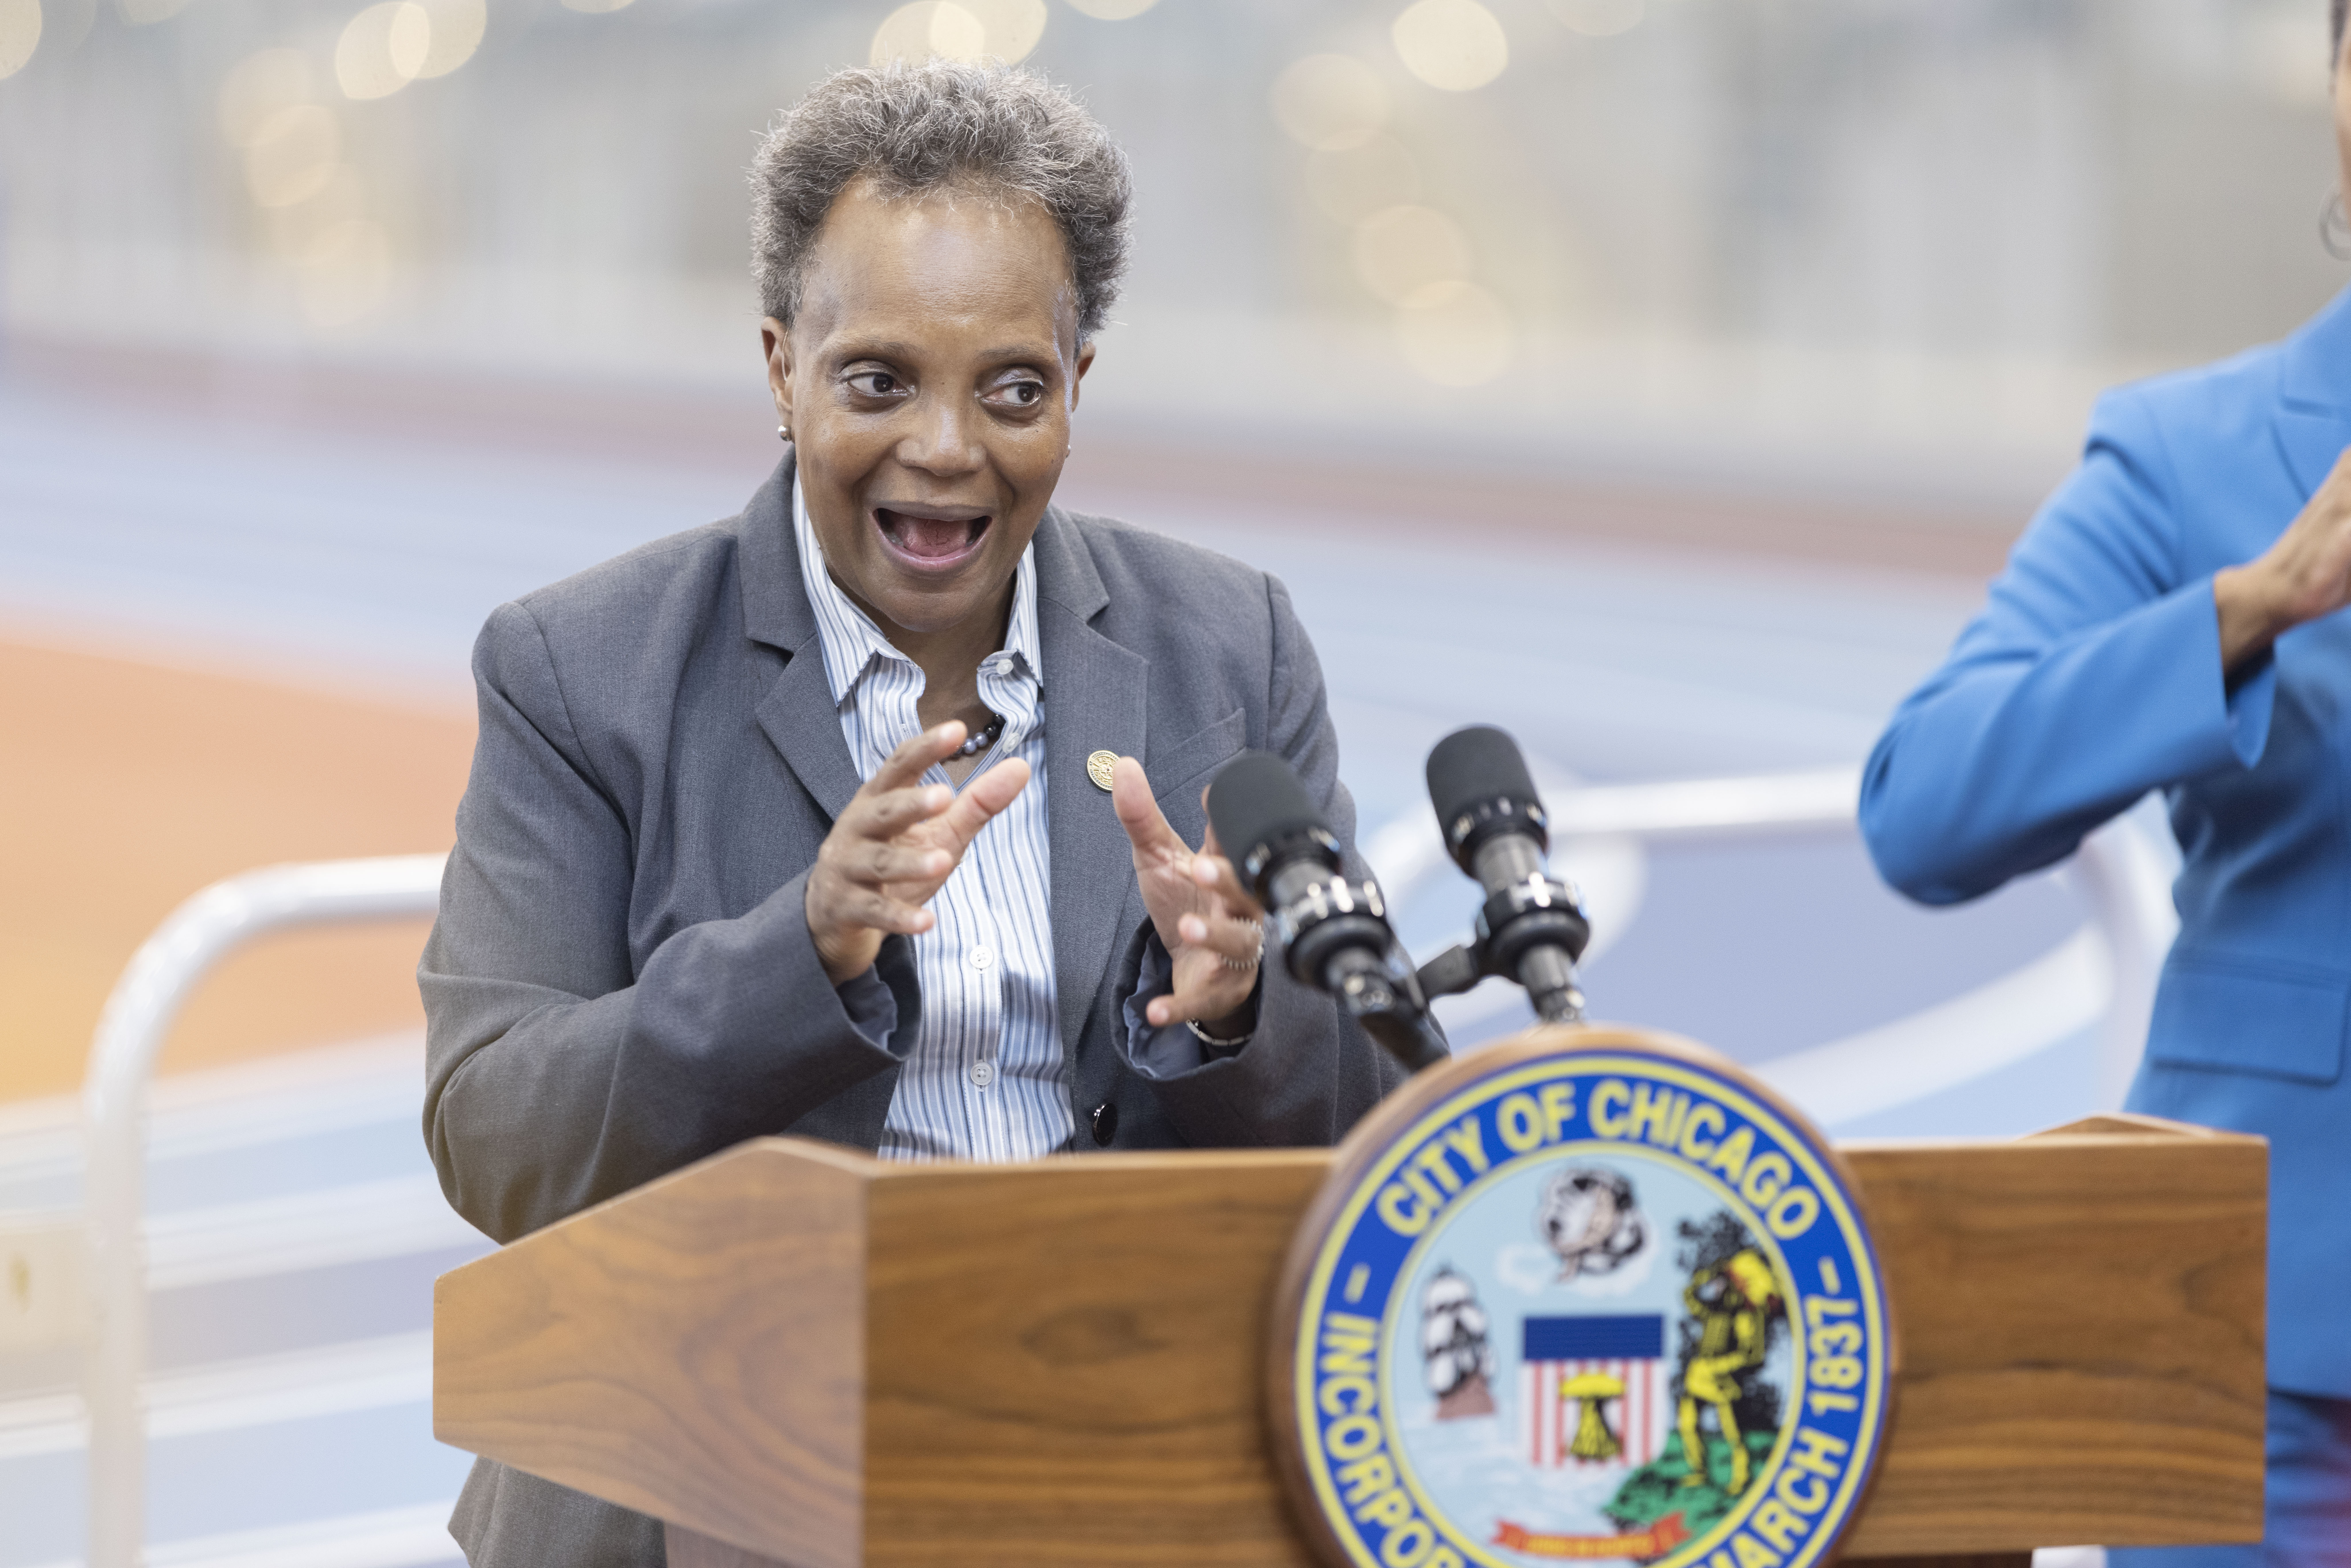 Mayor Lori Lightfoot, pictured at a July 6 news conference, urged residents on Tuesday to get a COVID-19 shot as cases swing upward again.